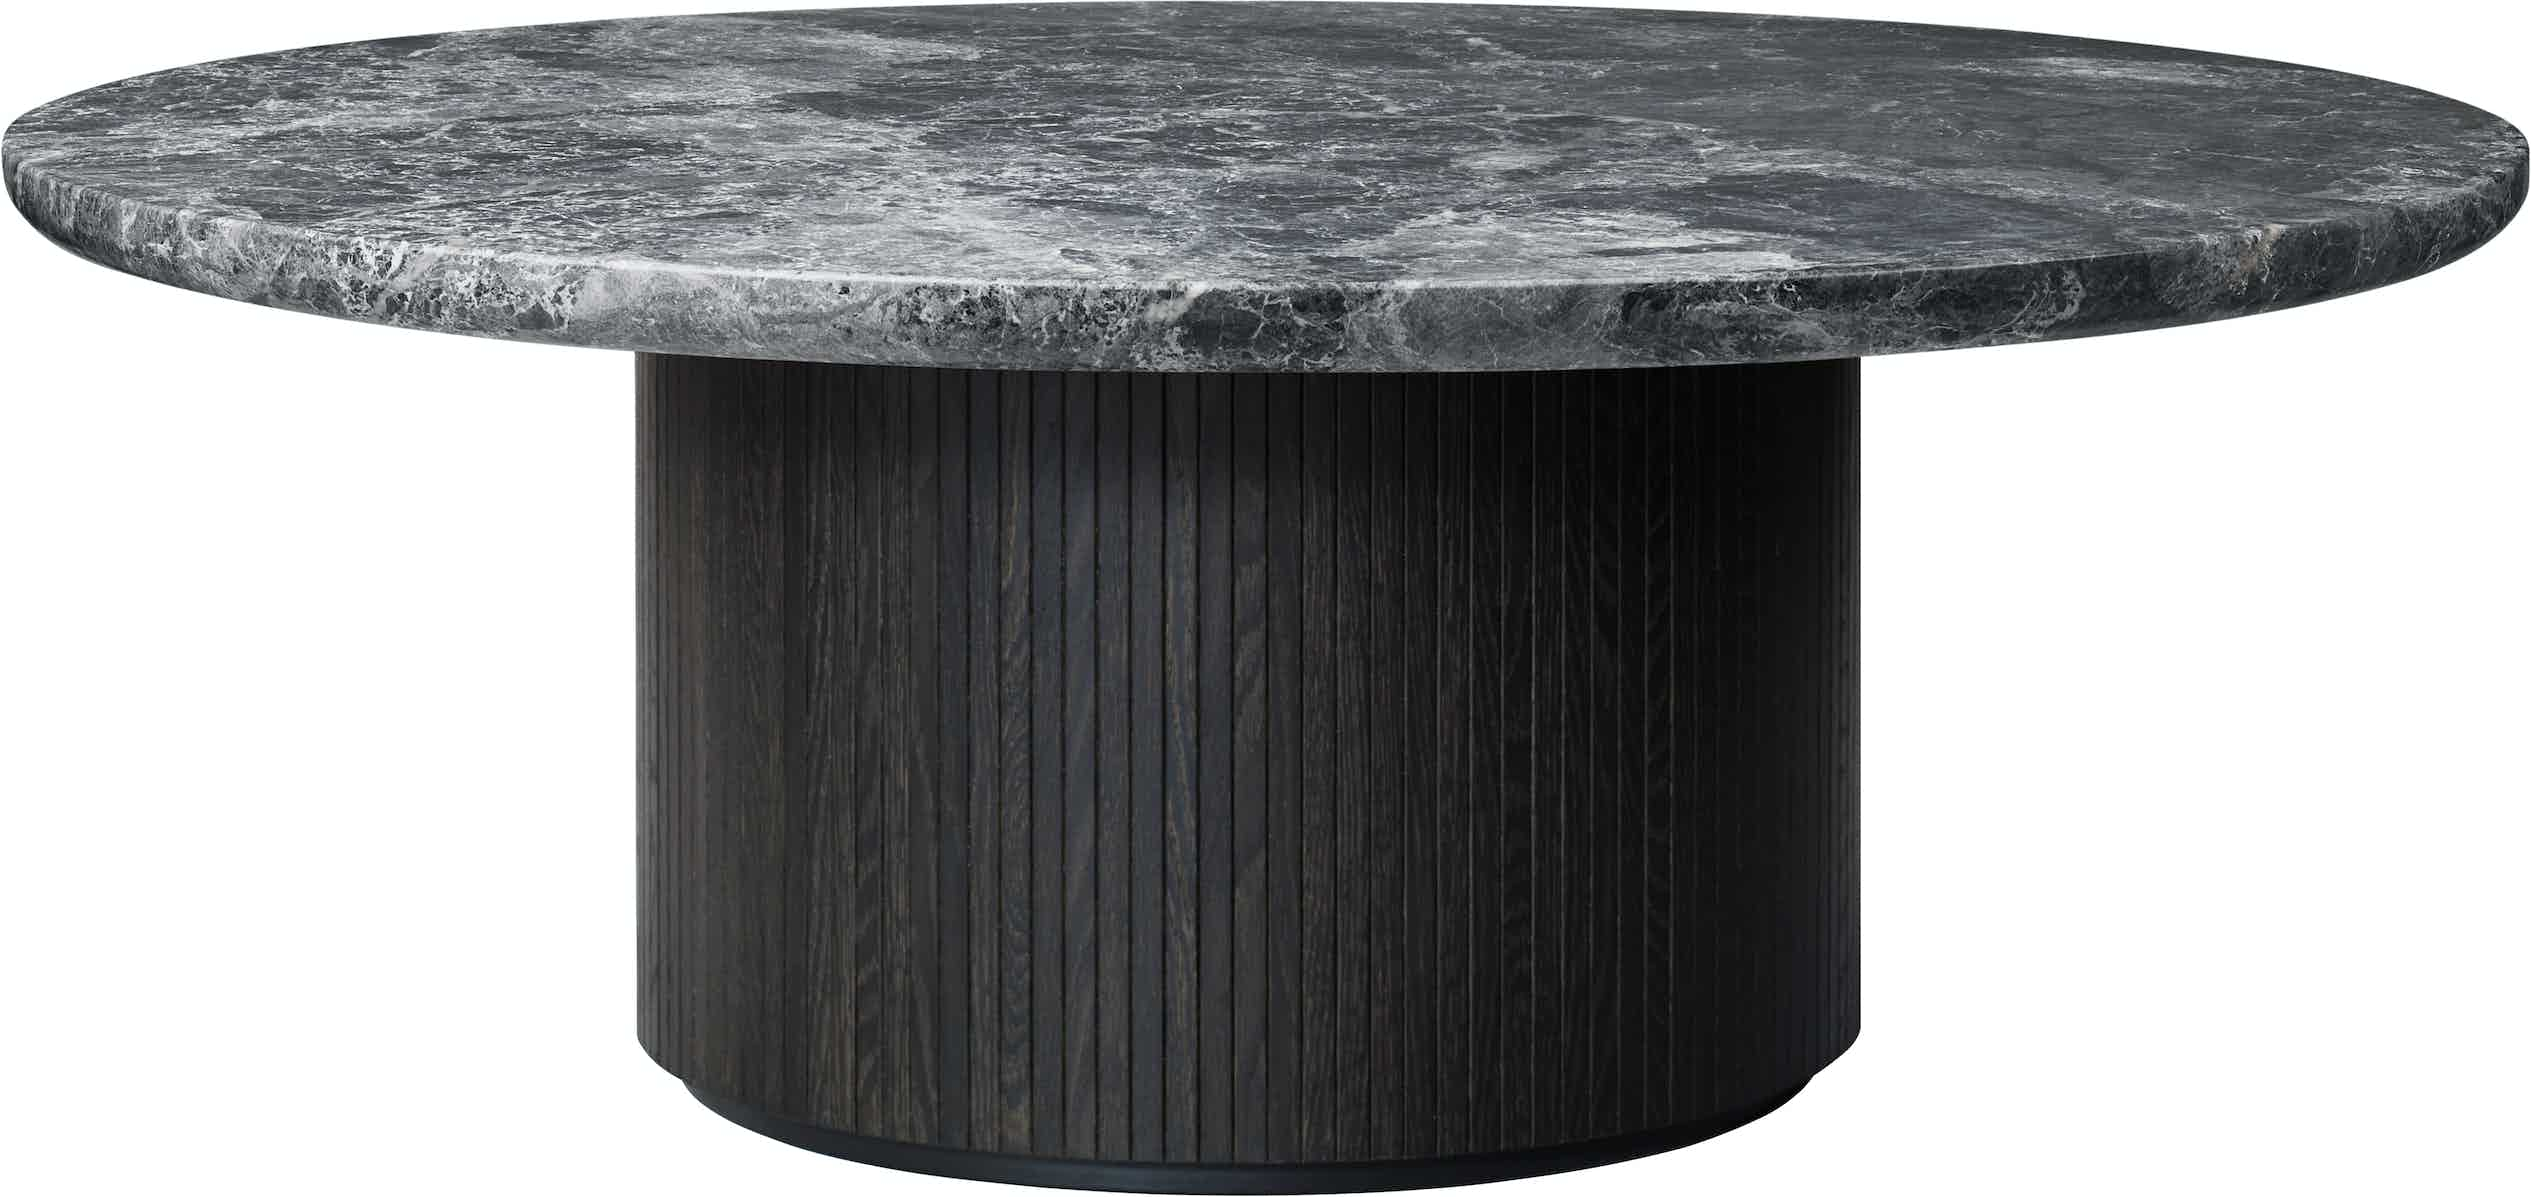 Gubi Moon Coffee Table Round 45X120 Haute Living